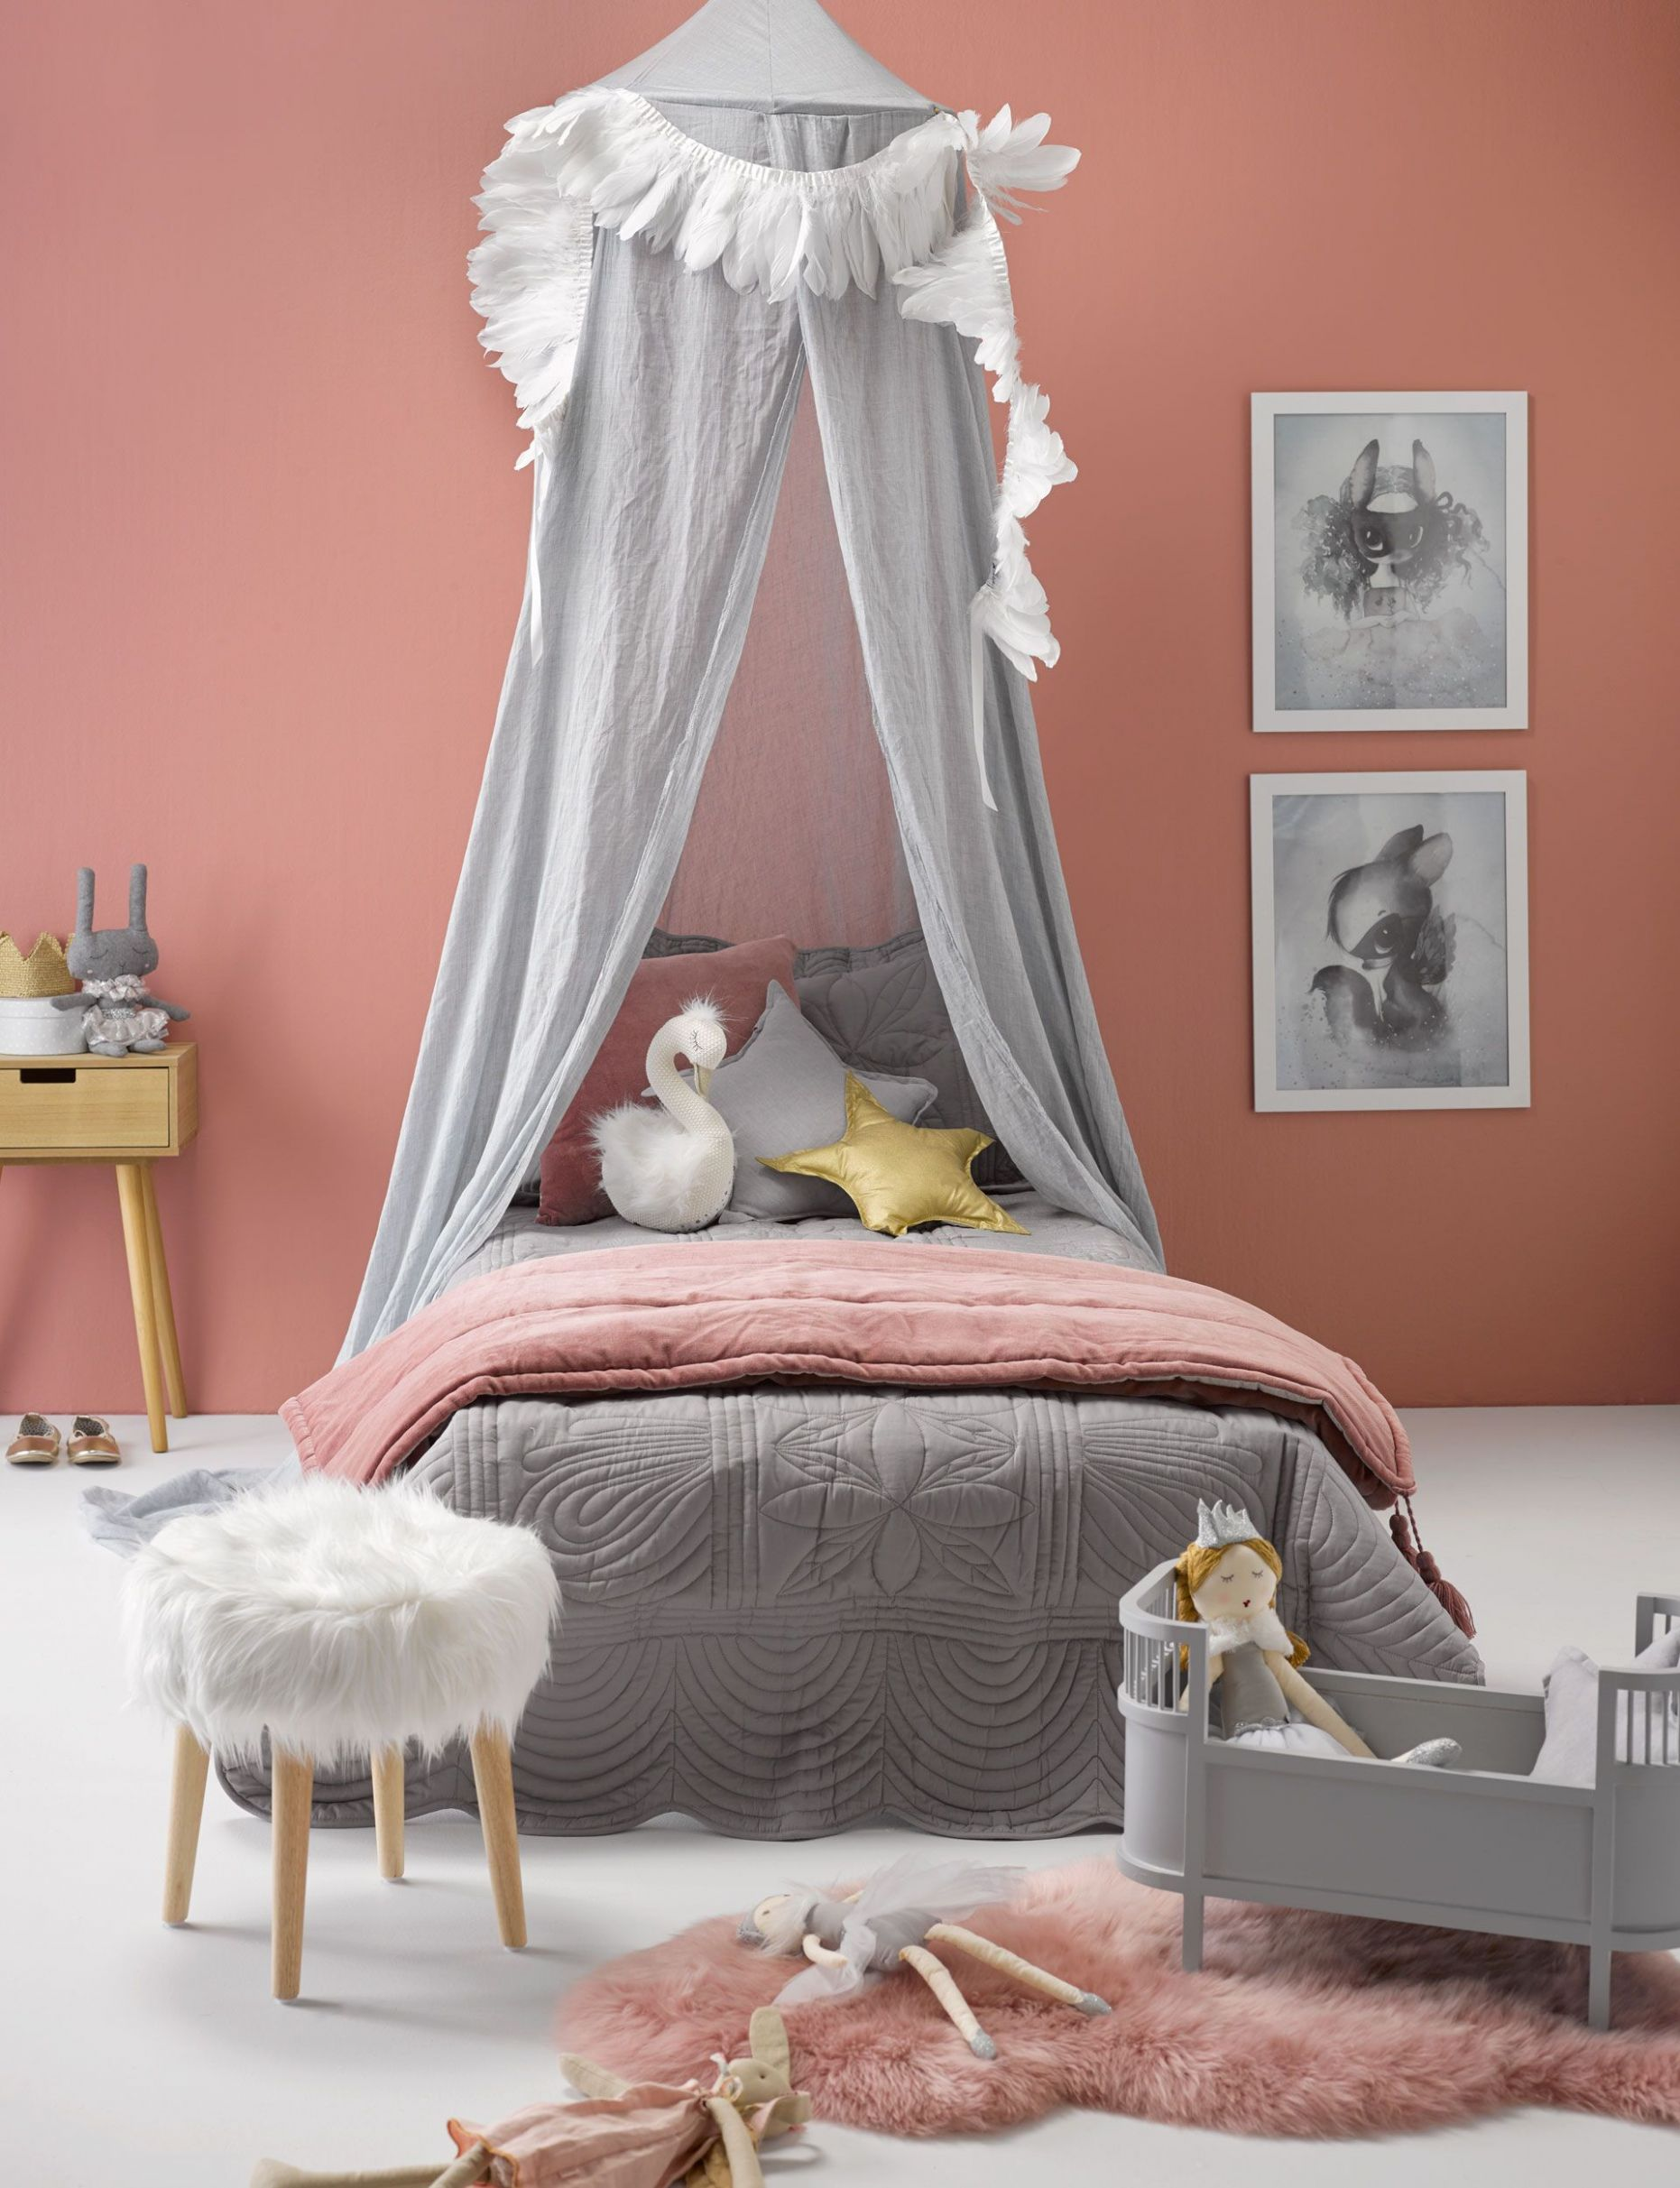 Kid's bedroom ideas: How to create a dreamy, magical space ...